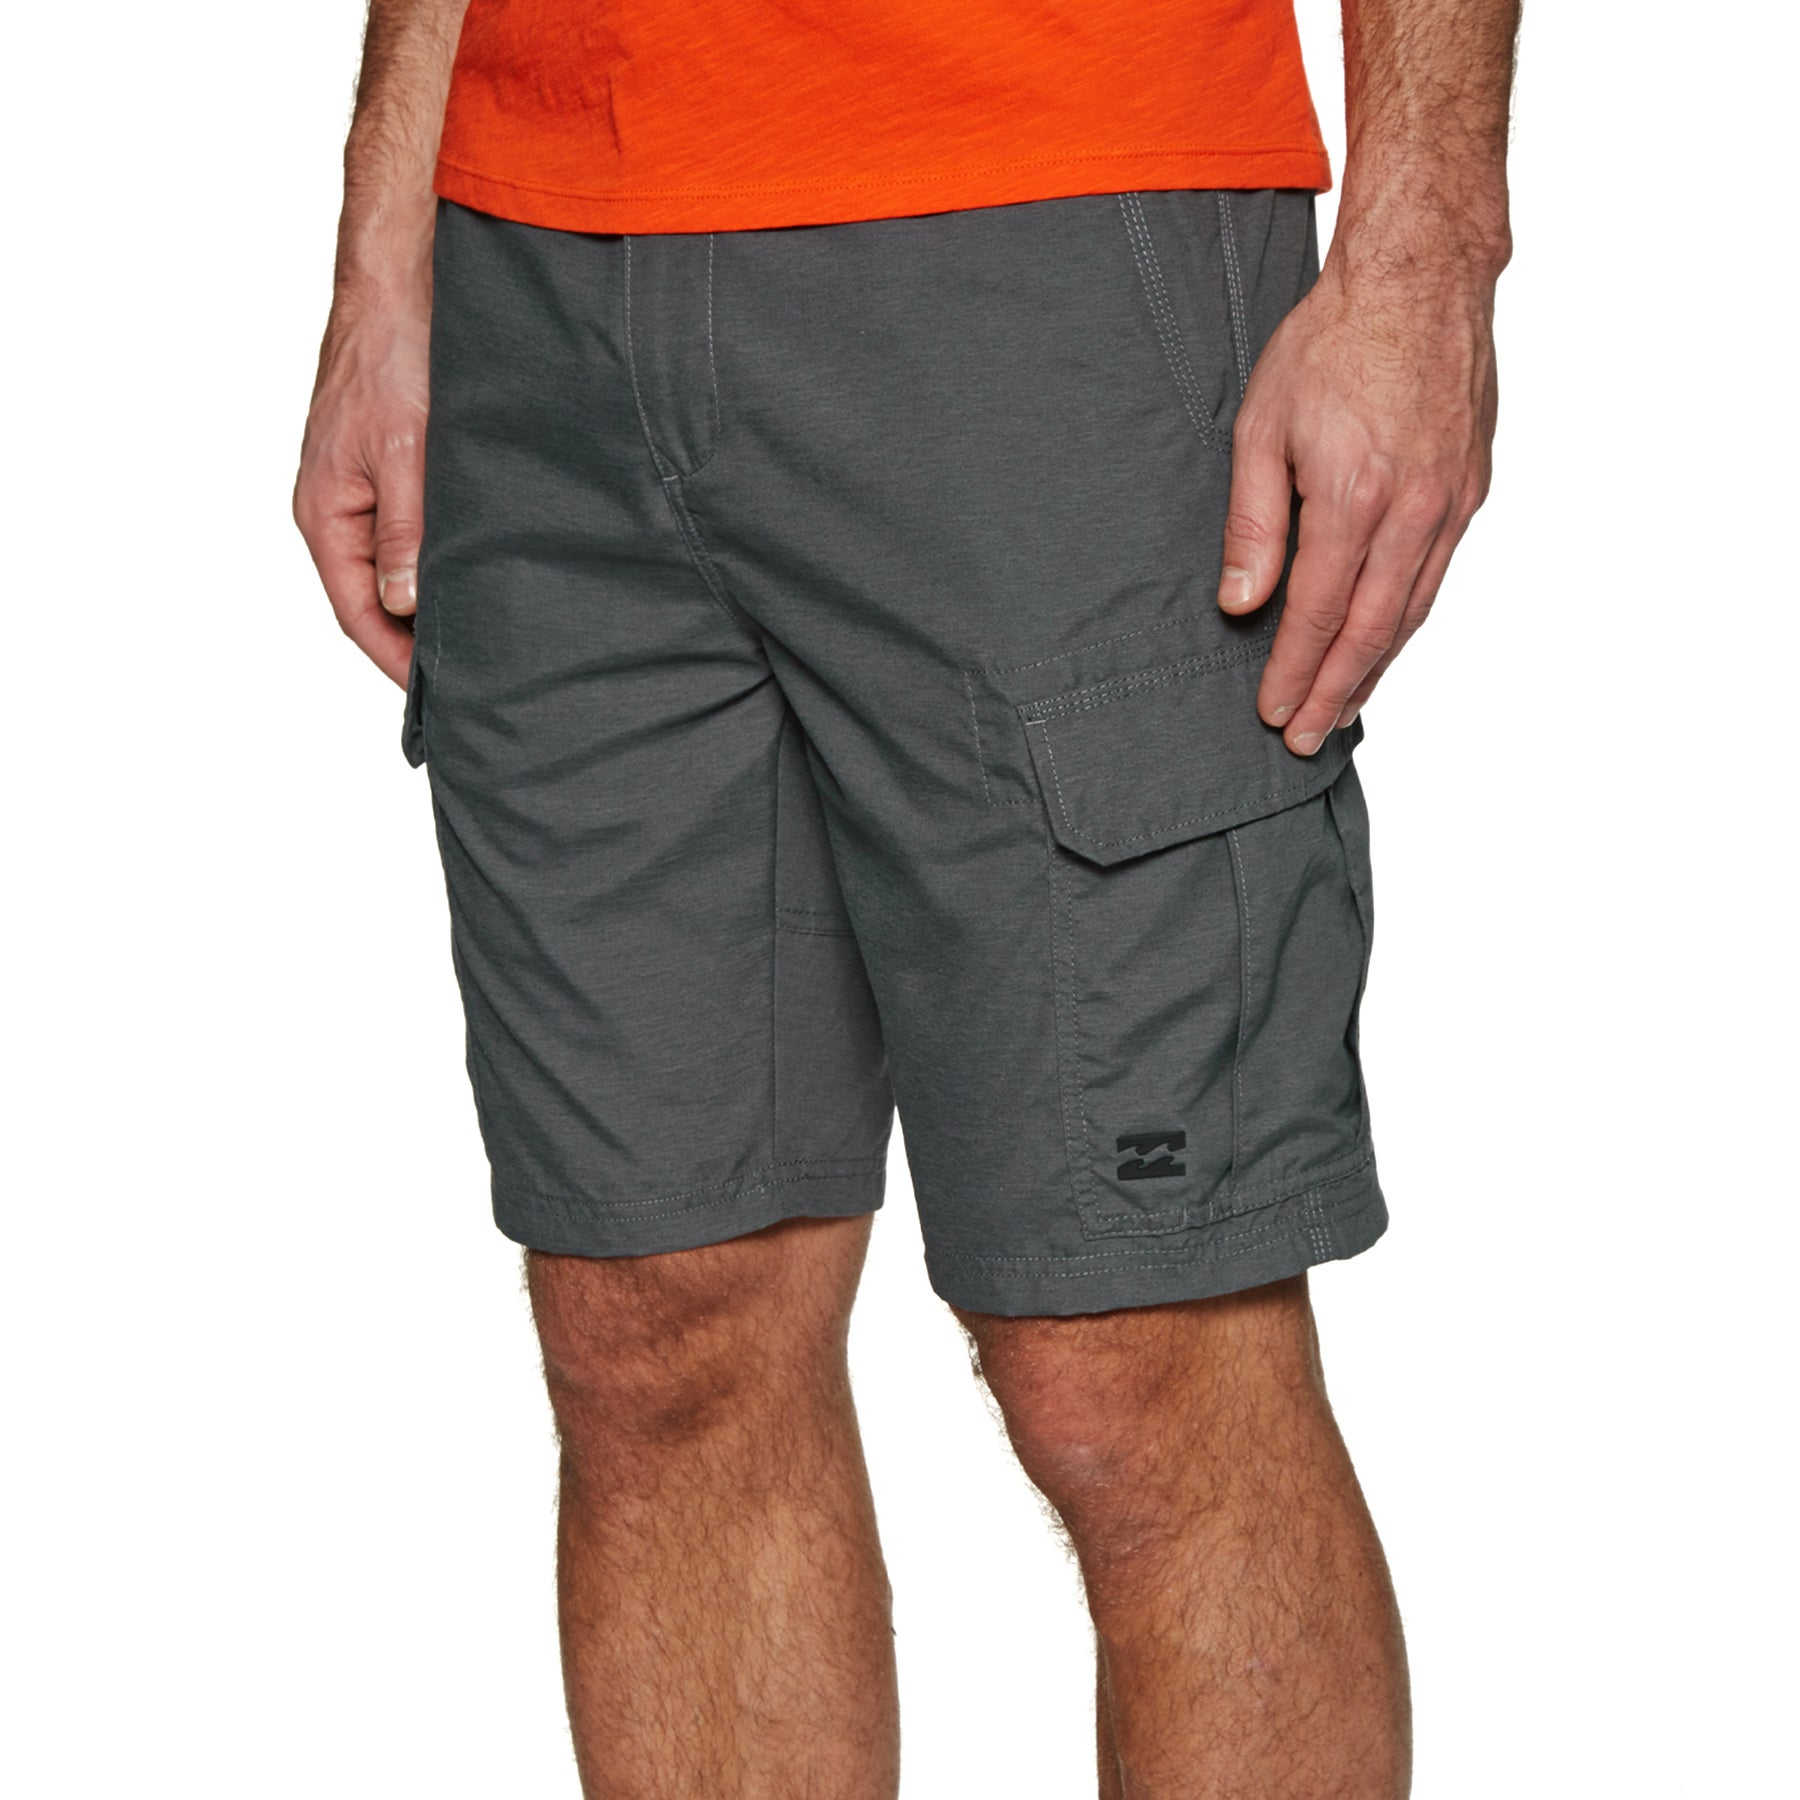 Scheme Submersible Boardshorts Billabong Surfdome Available From PNXZ8O0wkn